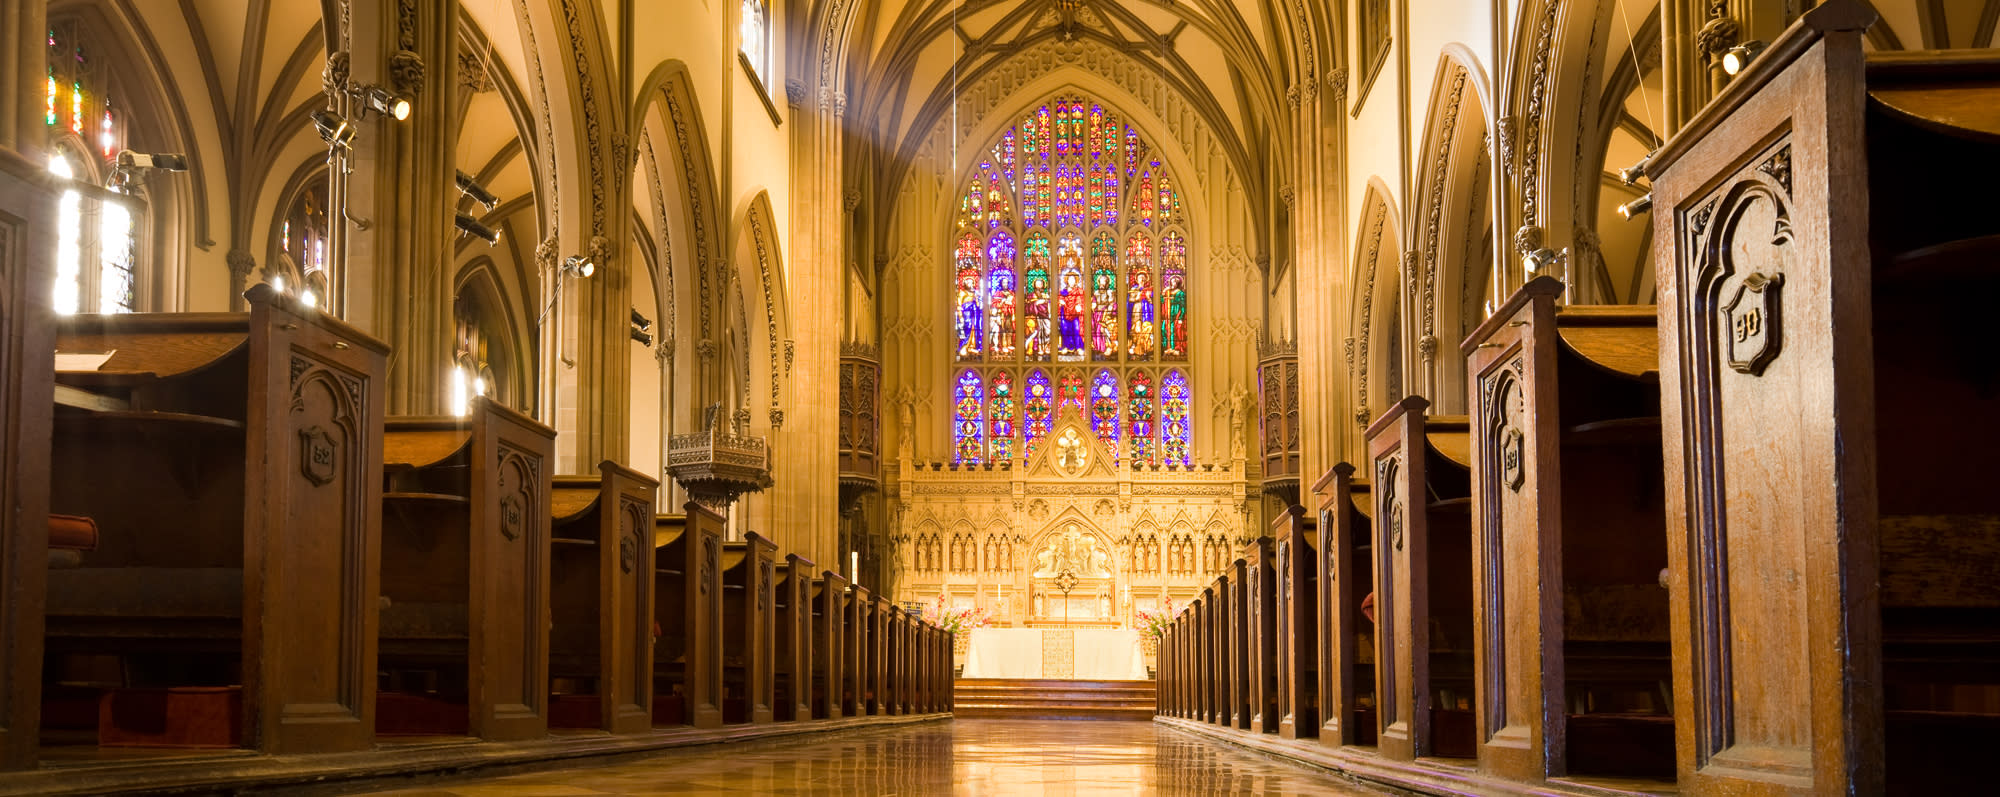 The interior pews and stained glass windows of Trinity Church in New York City